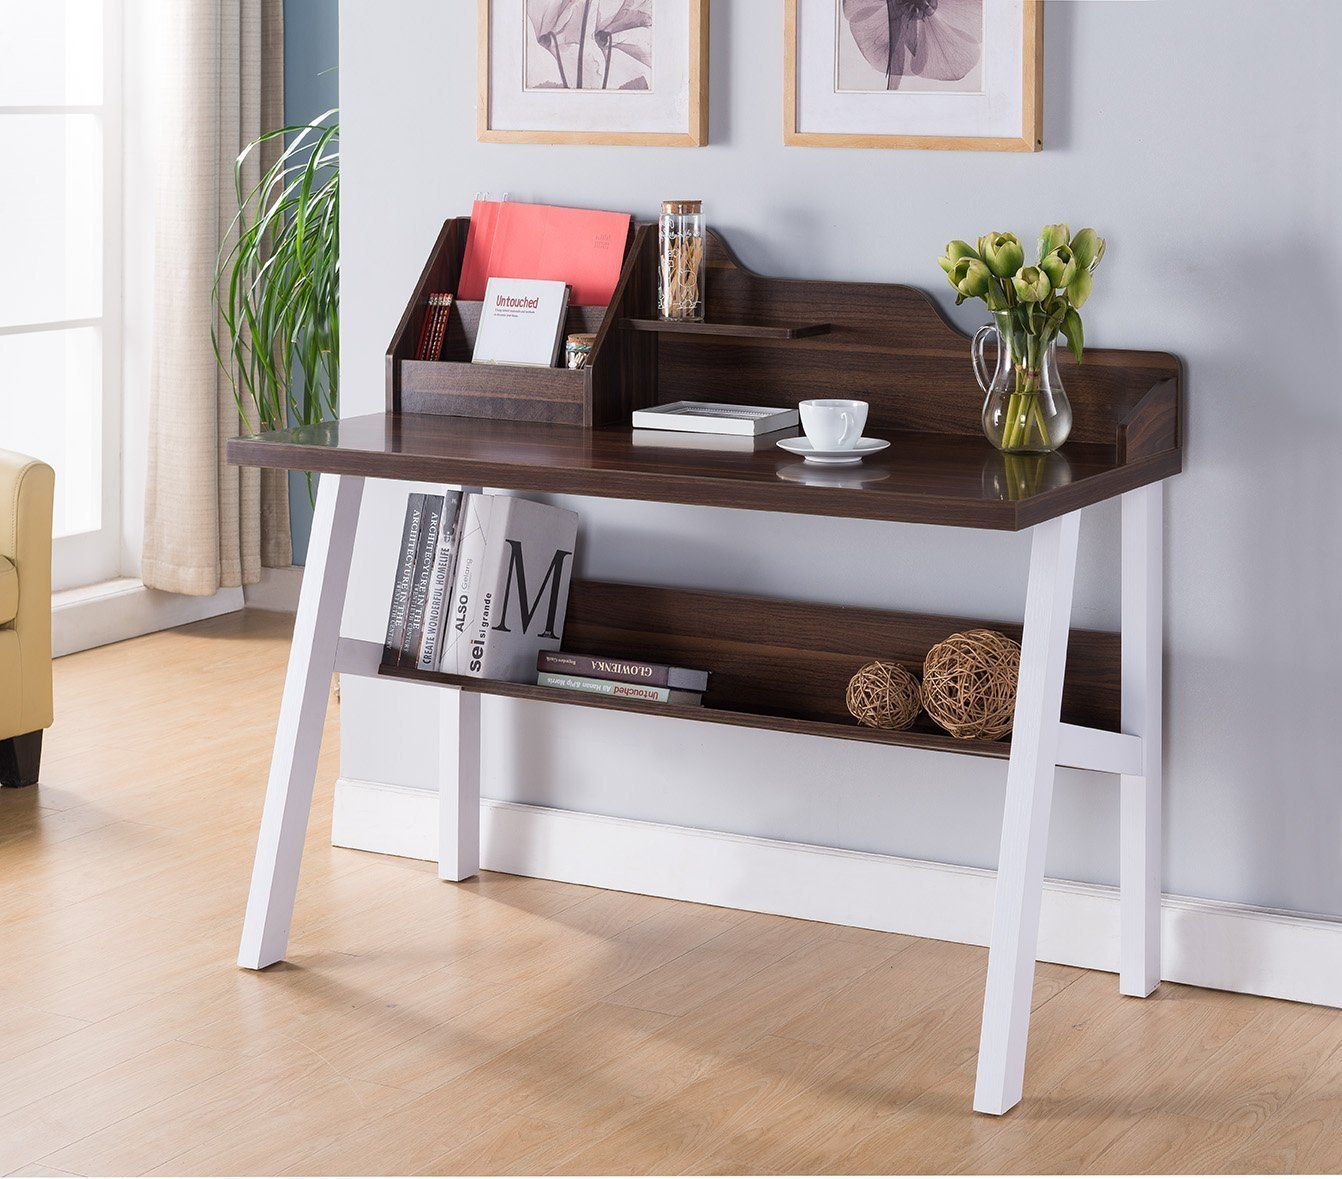 Wooden Desk With Bottom Shelf, Brown And White Products